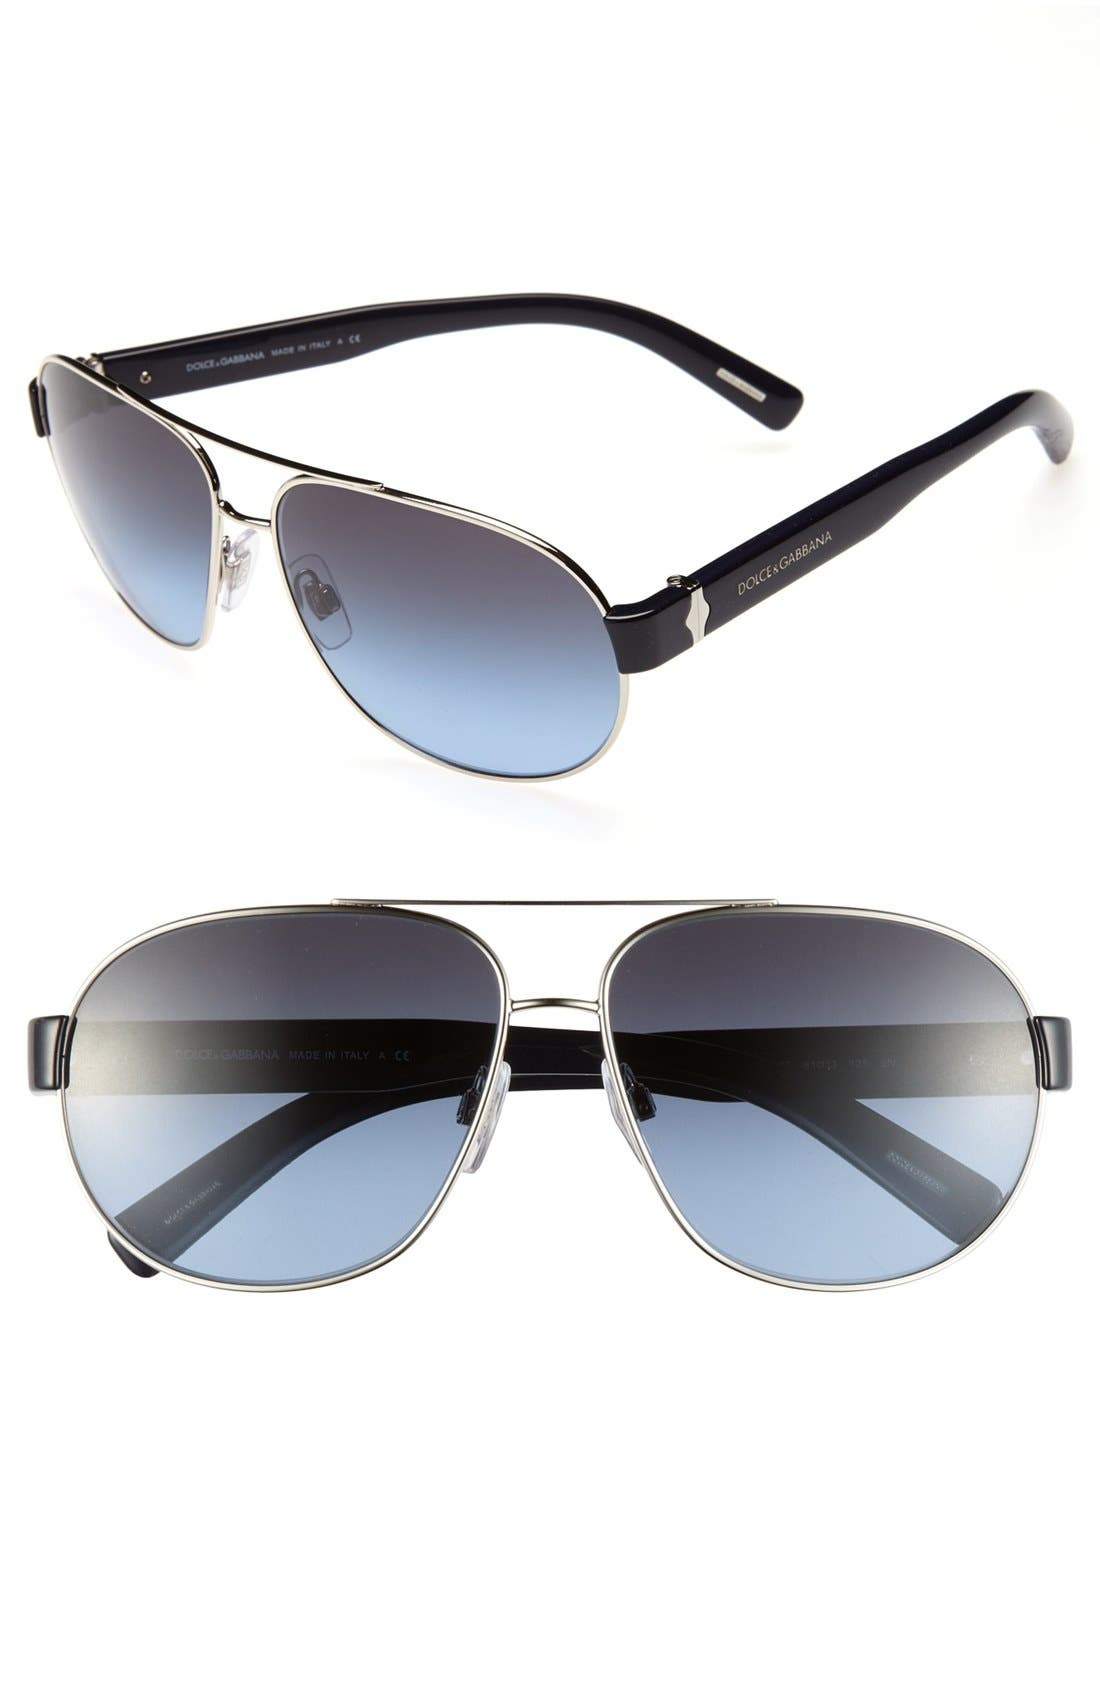 Alternate Image 1 Selected - Dolce&Gabbana 61mm Aviator Sunglasses